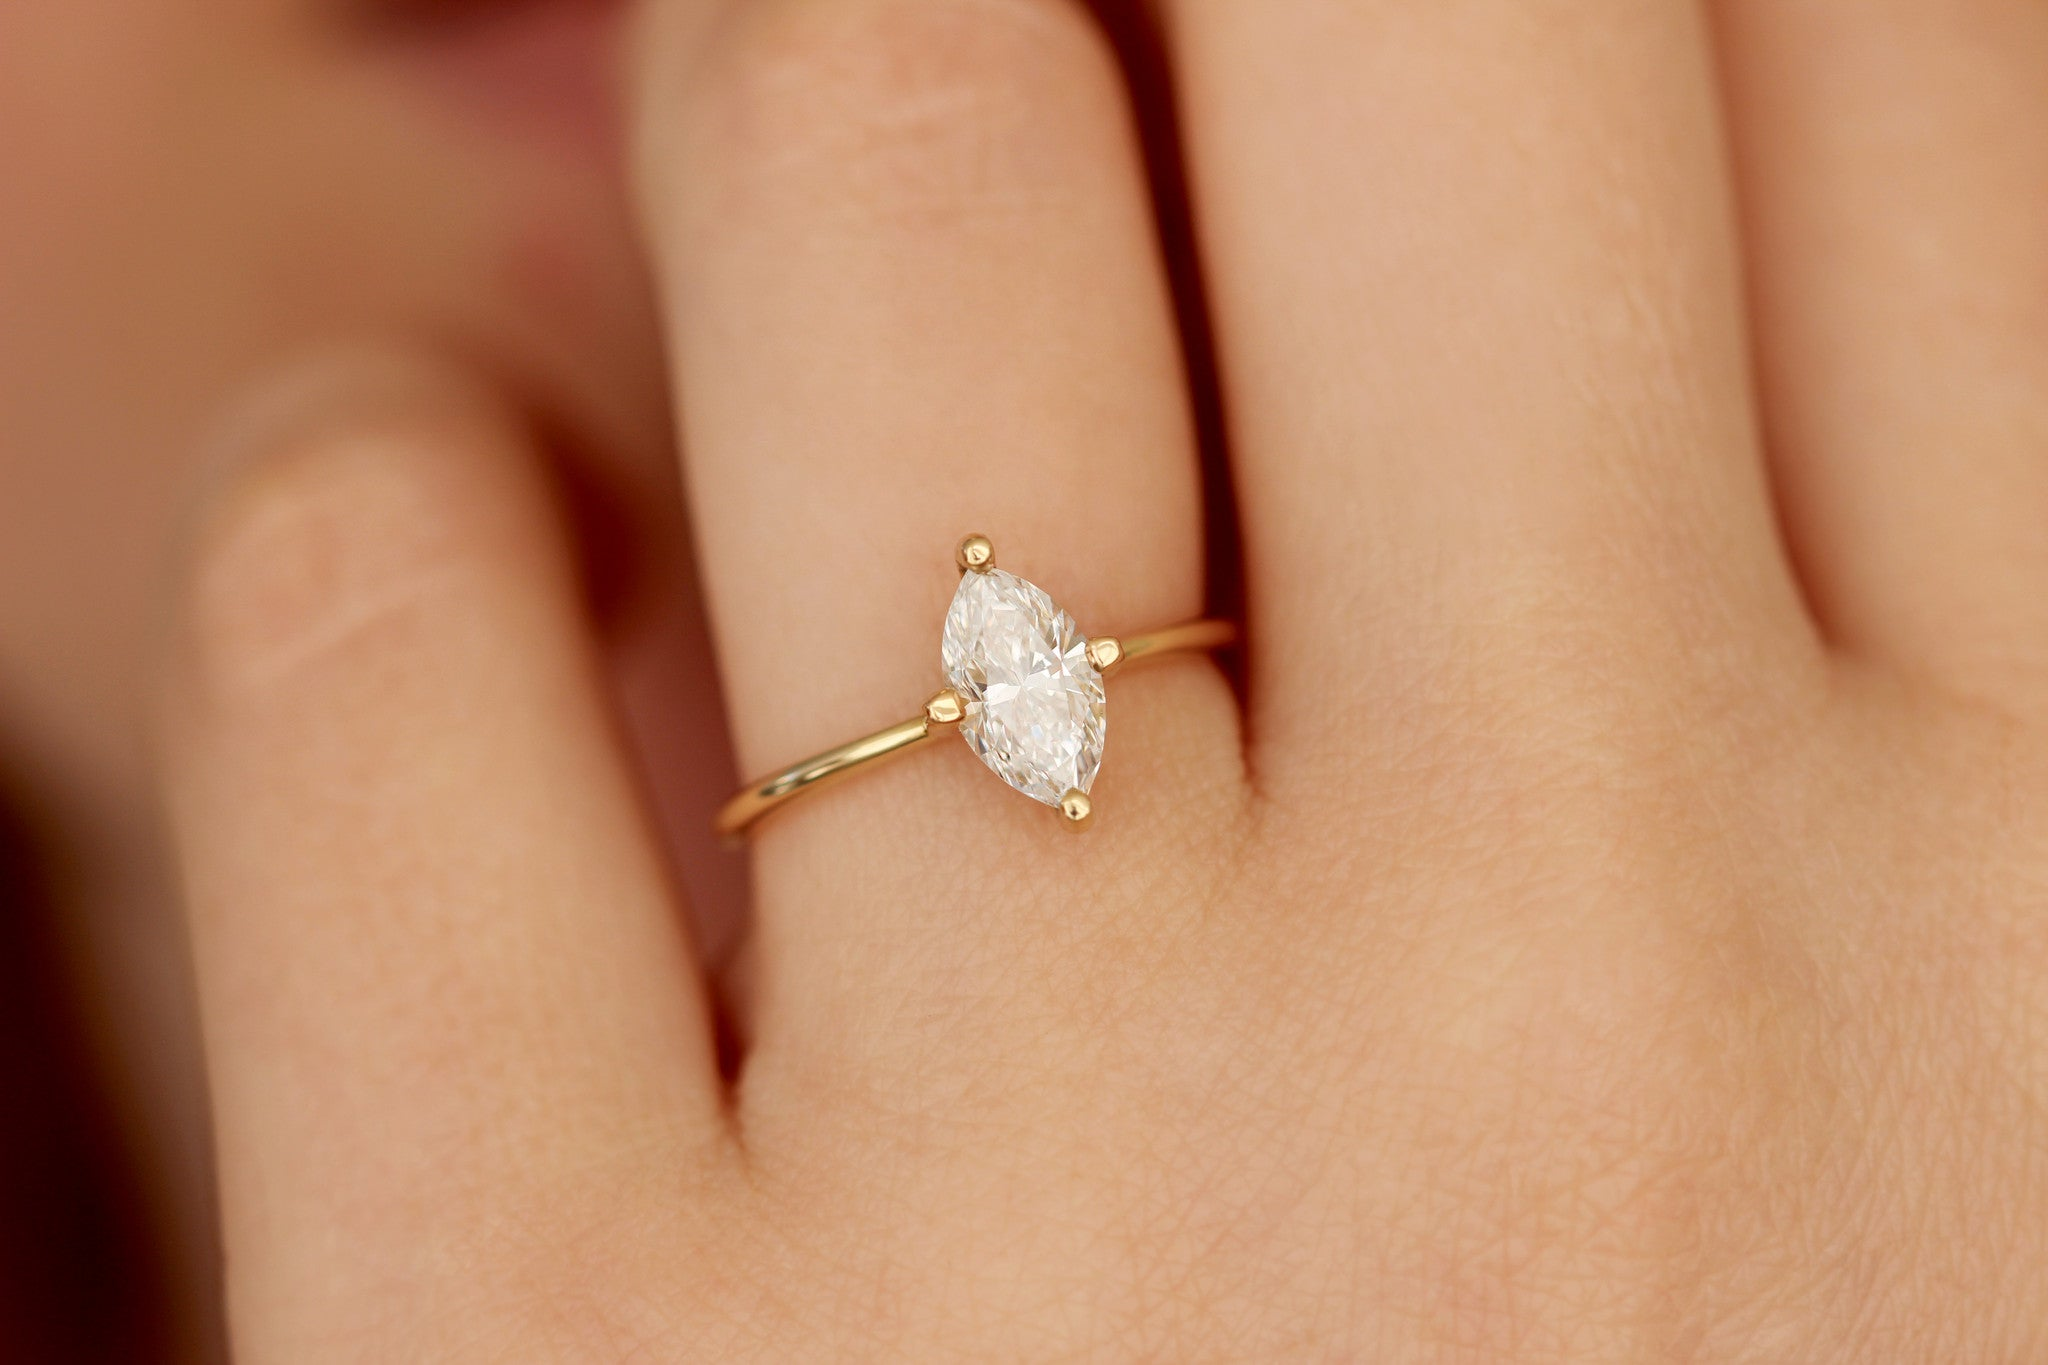 engagement vintage marquise shaped gold rings promise carat white marquis moissanite ring stones